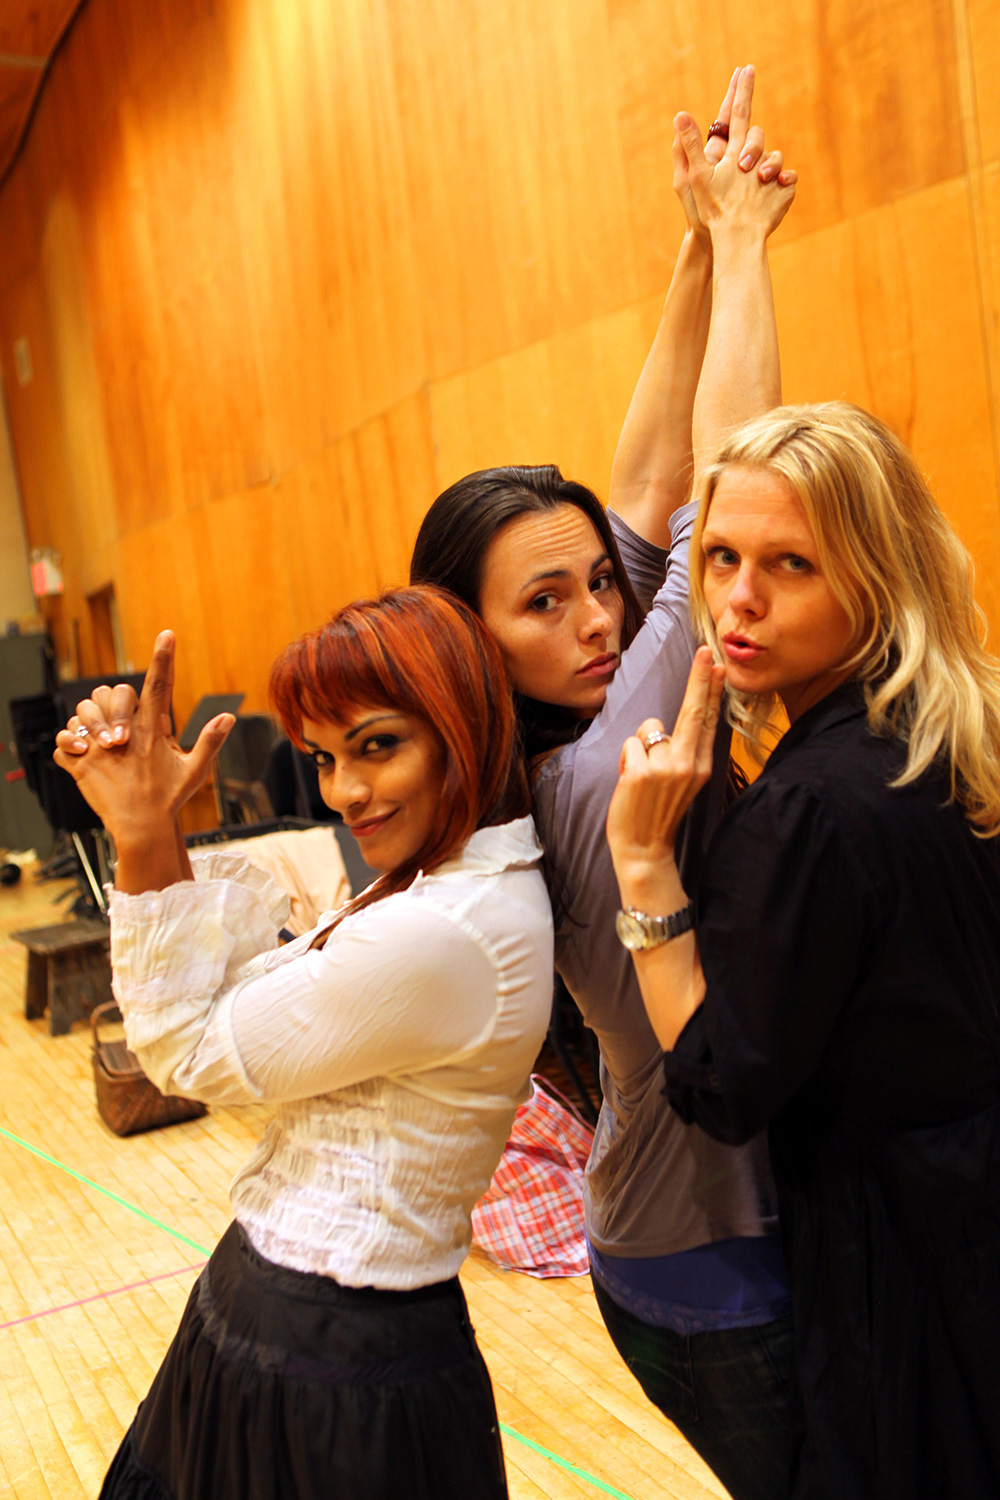 With Miah Persson and Danielle de Niese